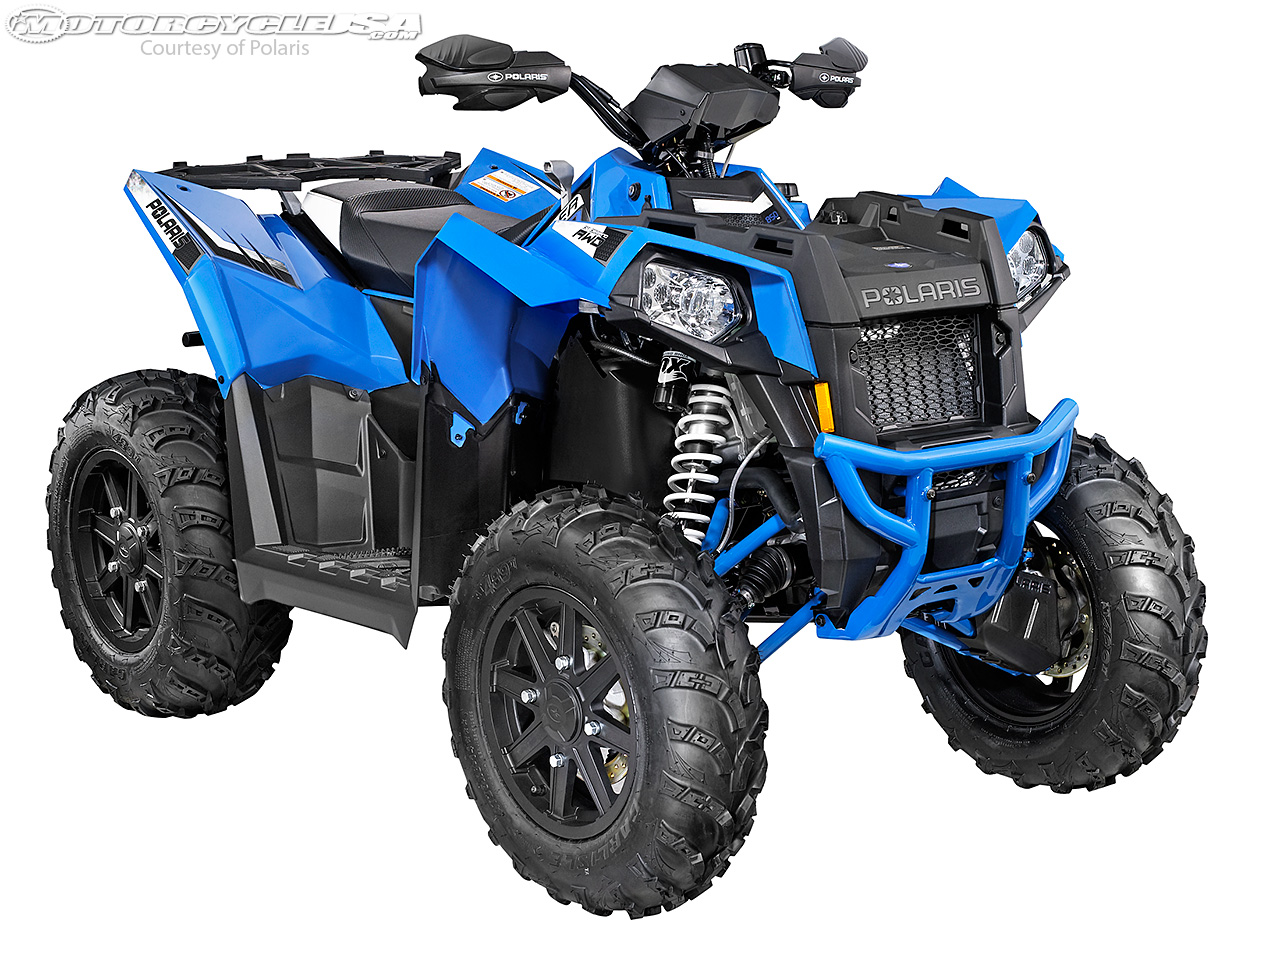 Polaris Scrambler 90 images #120606